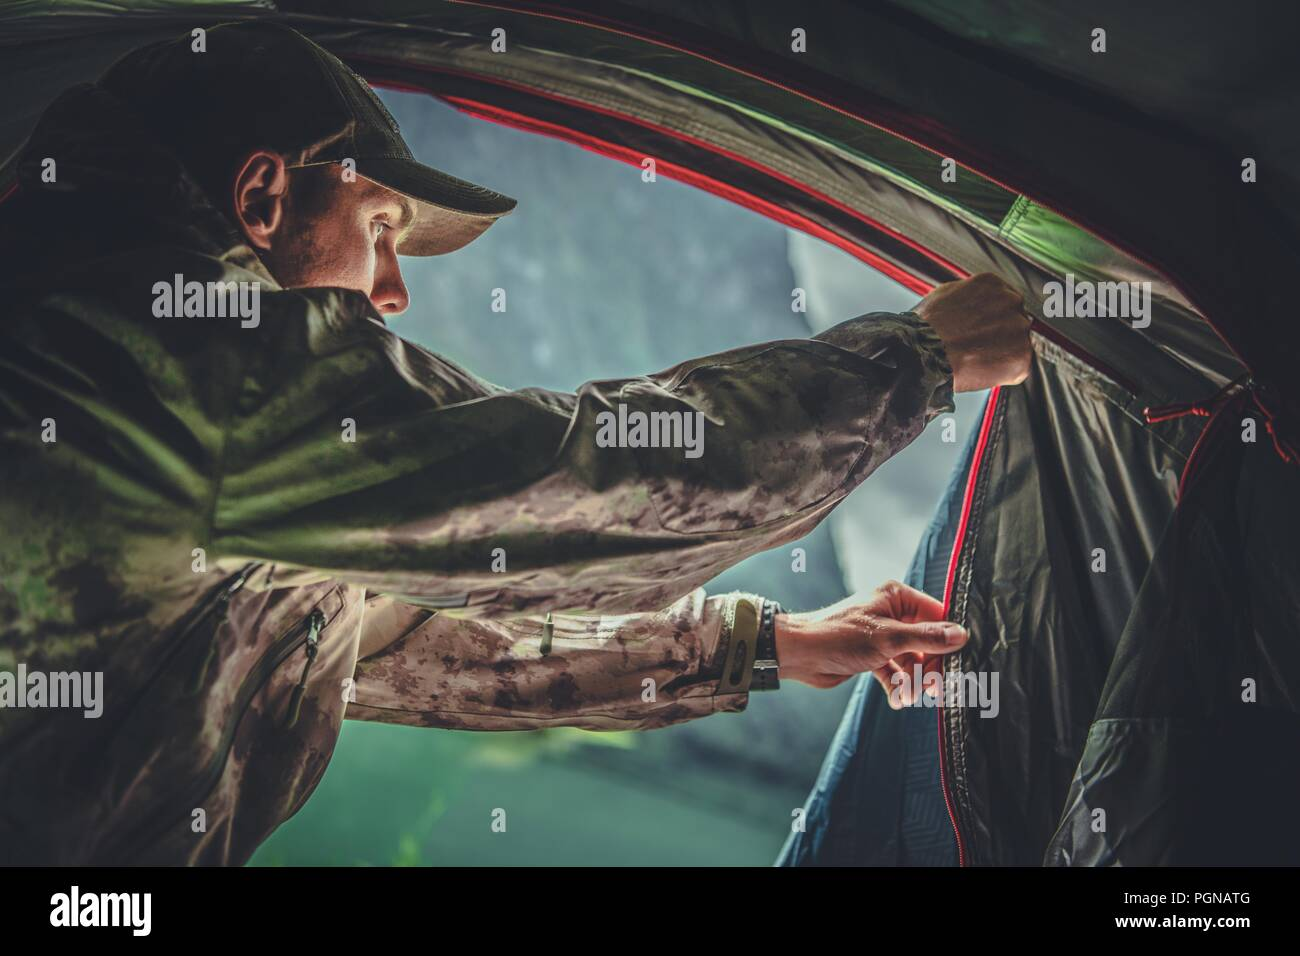 Game Hunter Camping Spot. Caucasian Hunting Men in His 30s Closing His Tent From Inside. - Stock Image